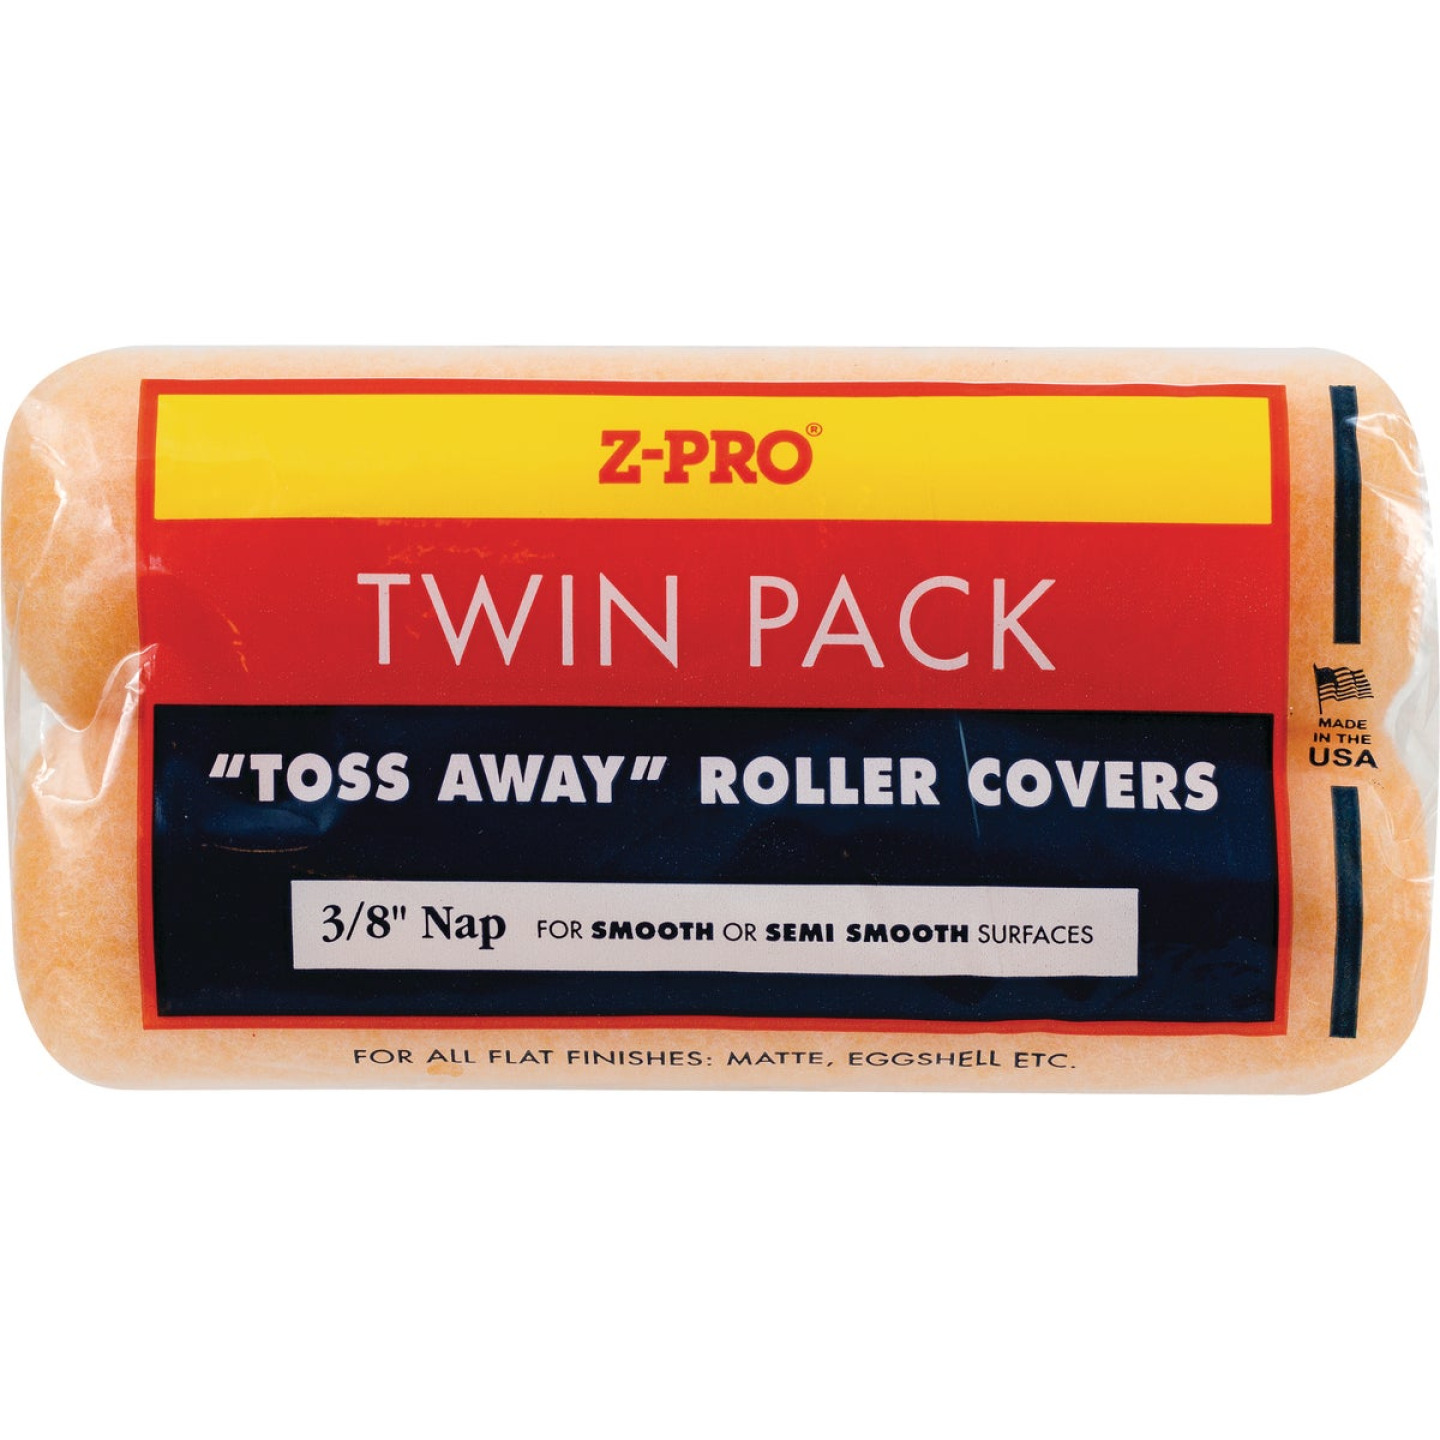 Premier Z-Pro 9 In. x 3/8 In. Toss Away Knit Fabric Roller Cover (2-Pack) Image 1